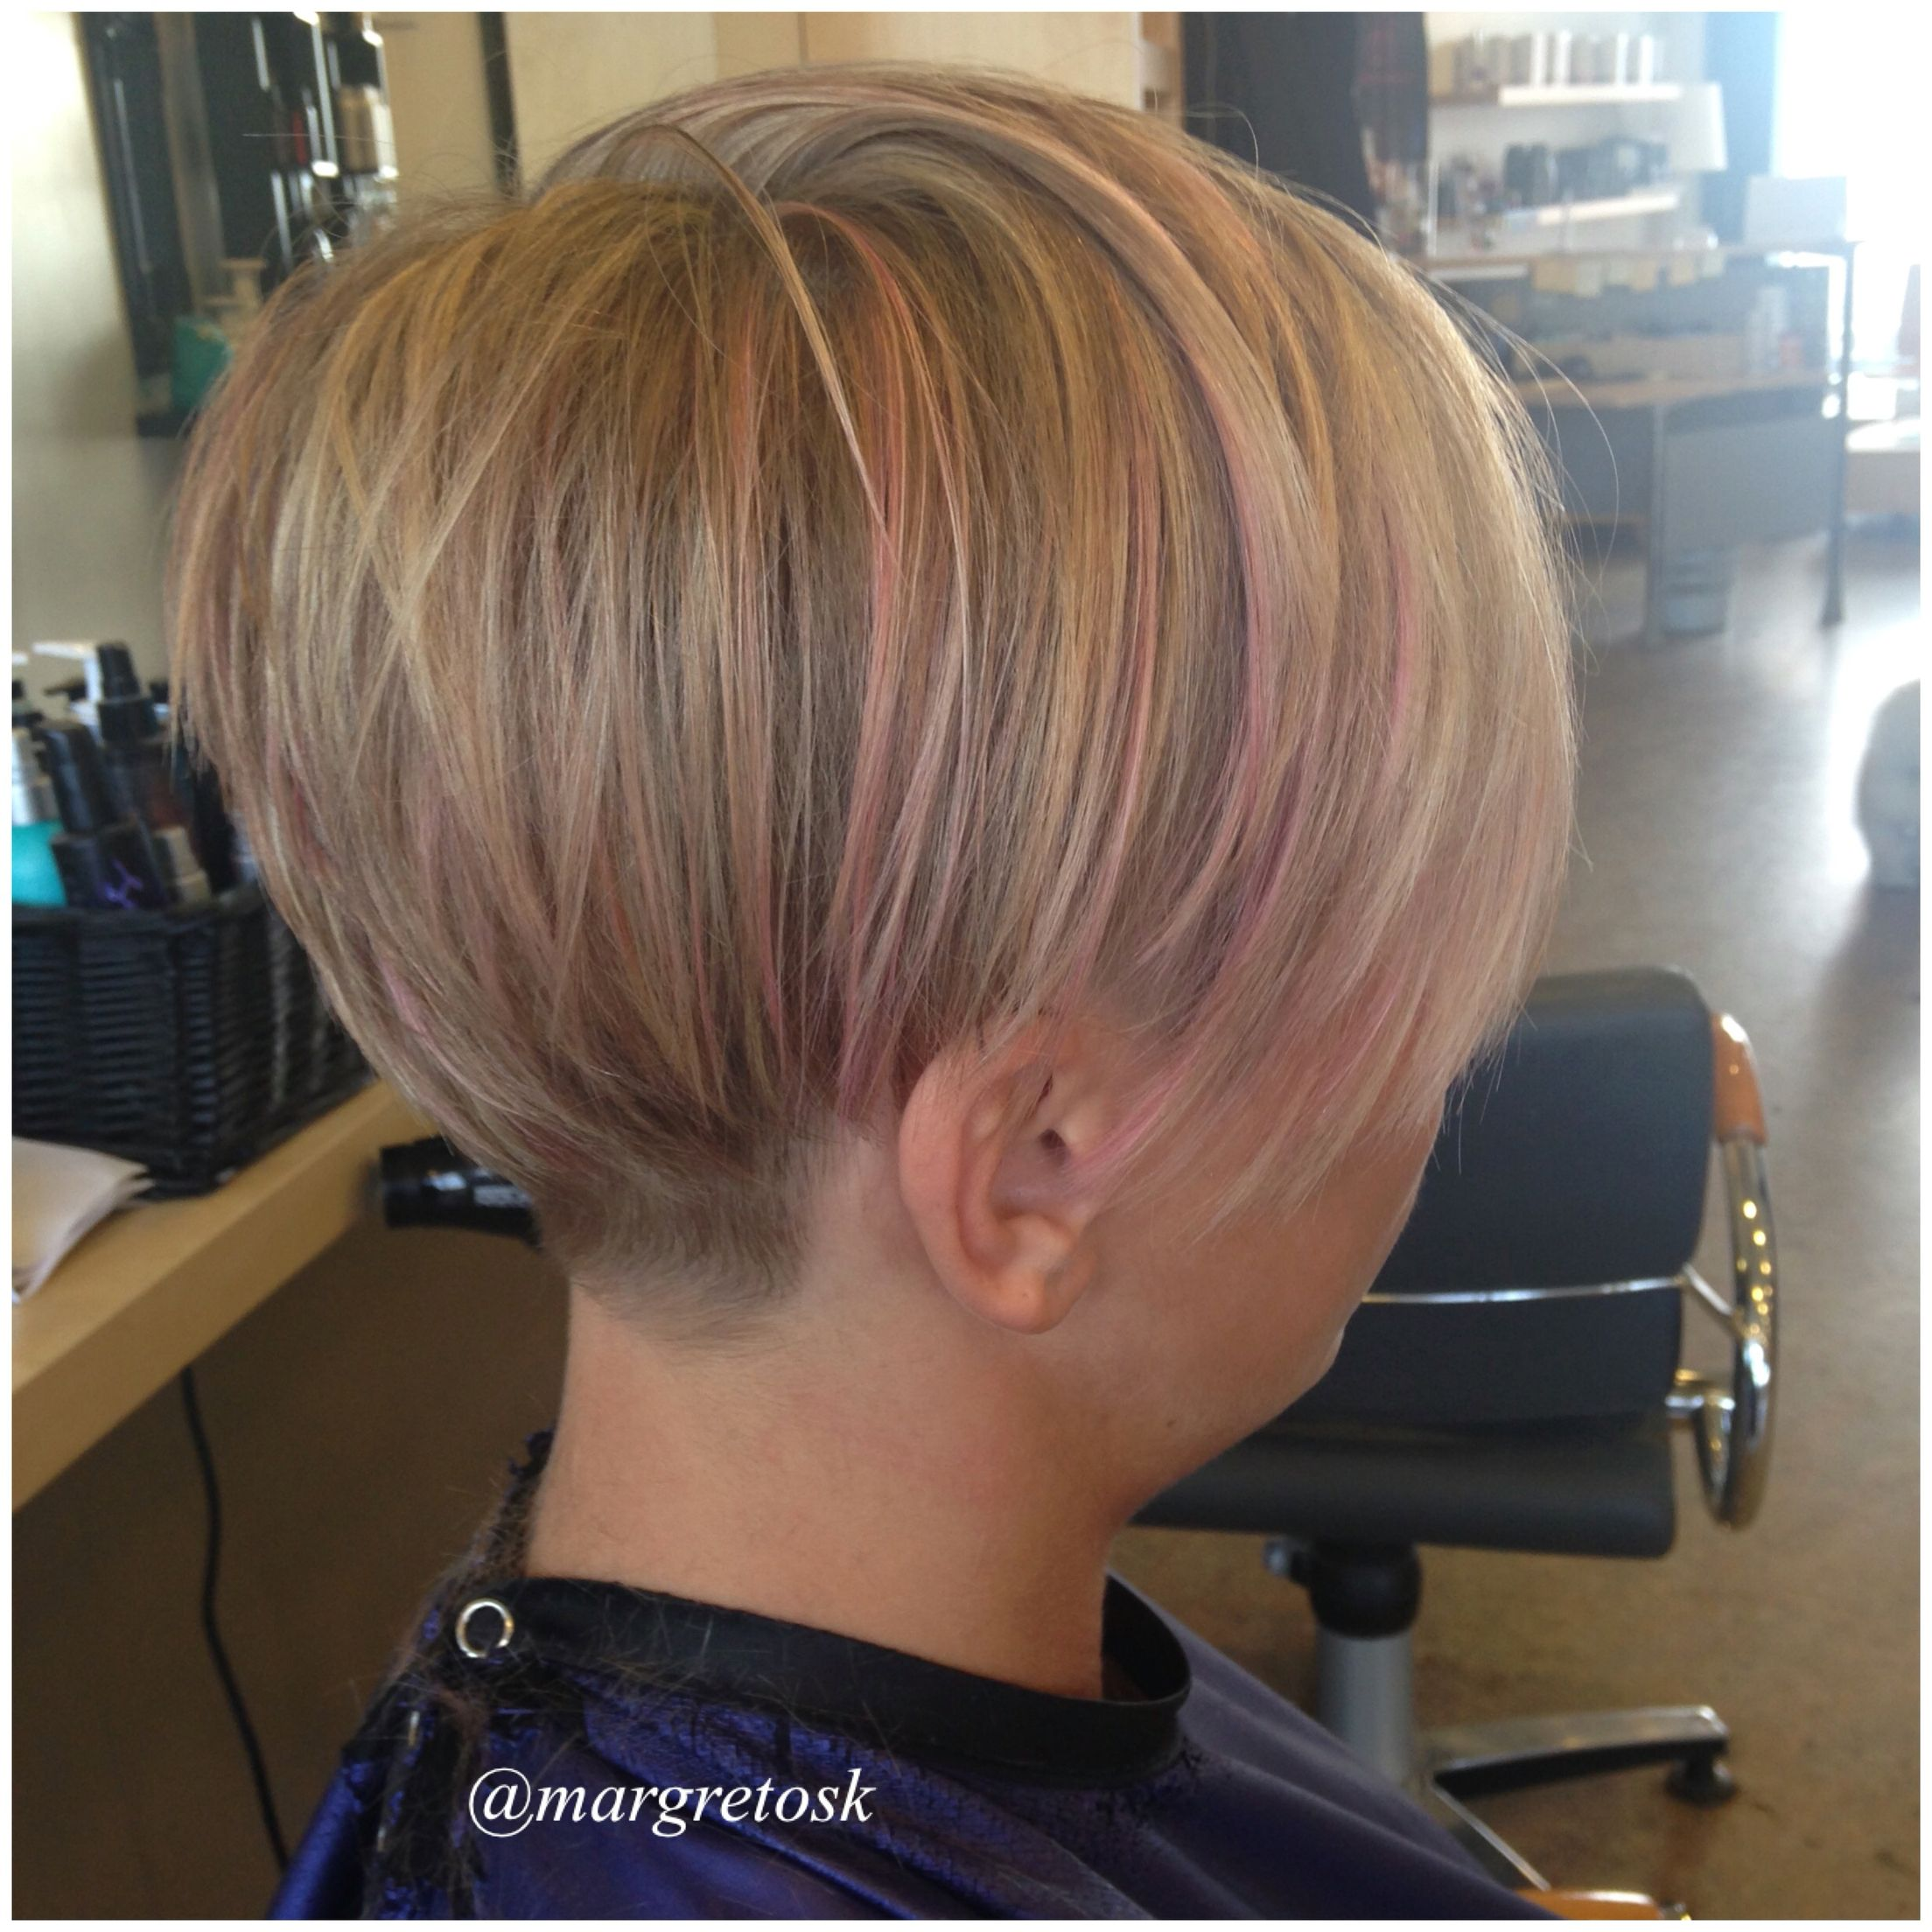 Short Women S Hair With Undercut And Layers Blonde Hair With Pastel Pink Highlights Short Hair Styles Blonde With Pink Trendy Hair Color